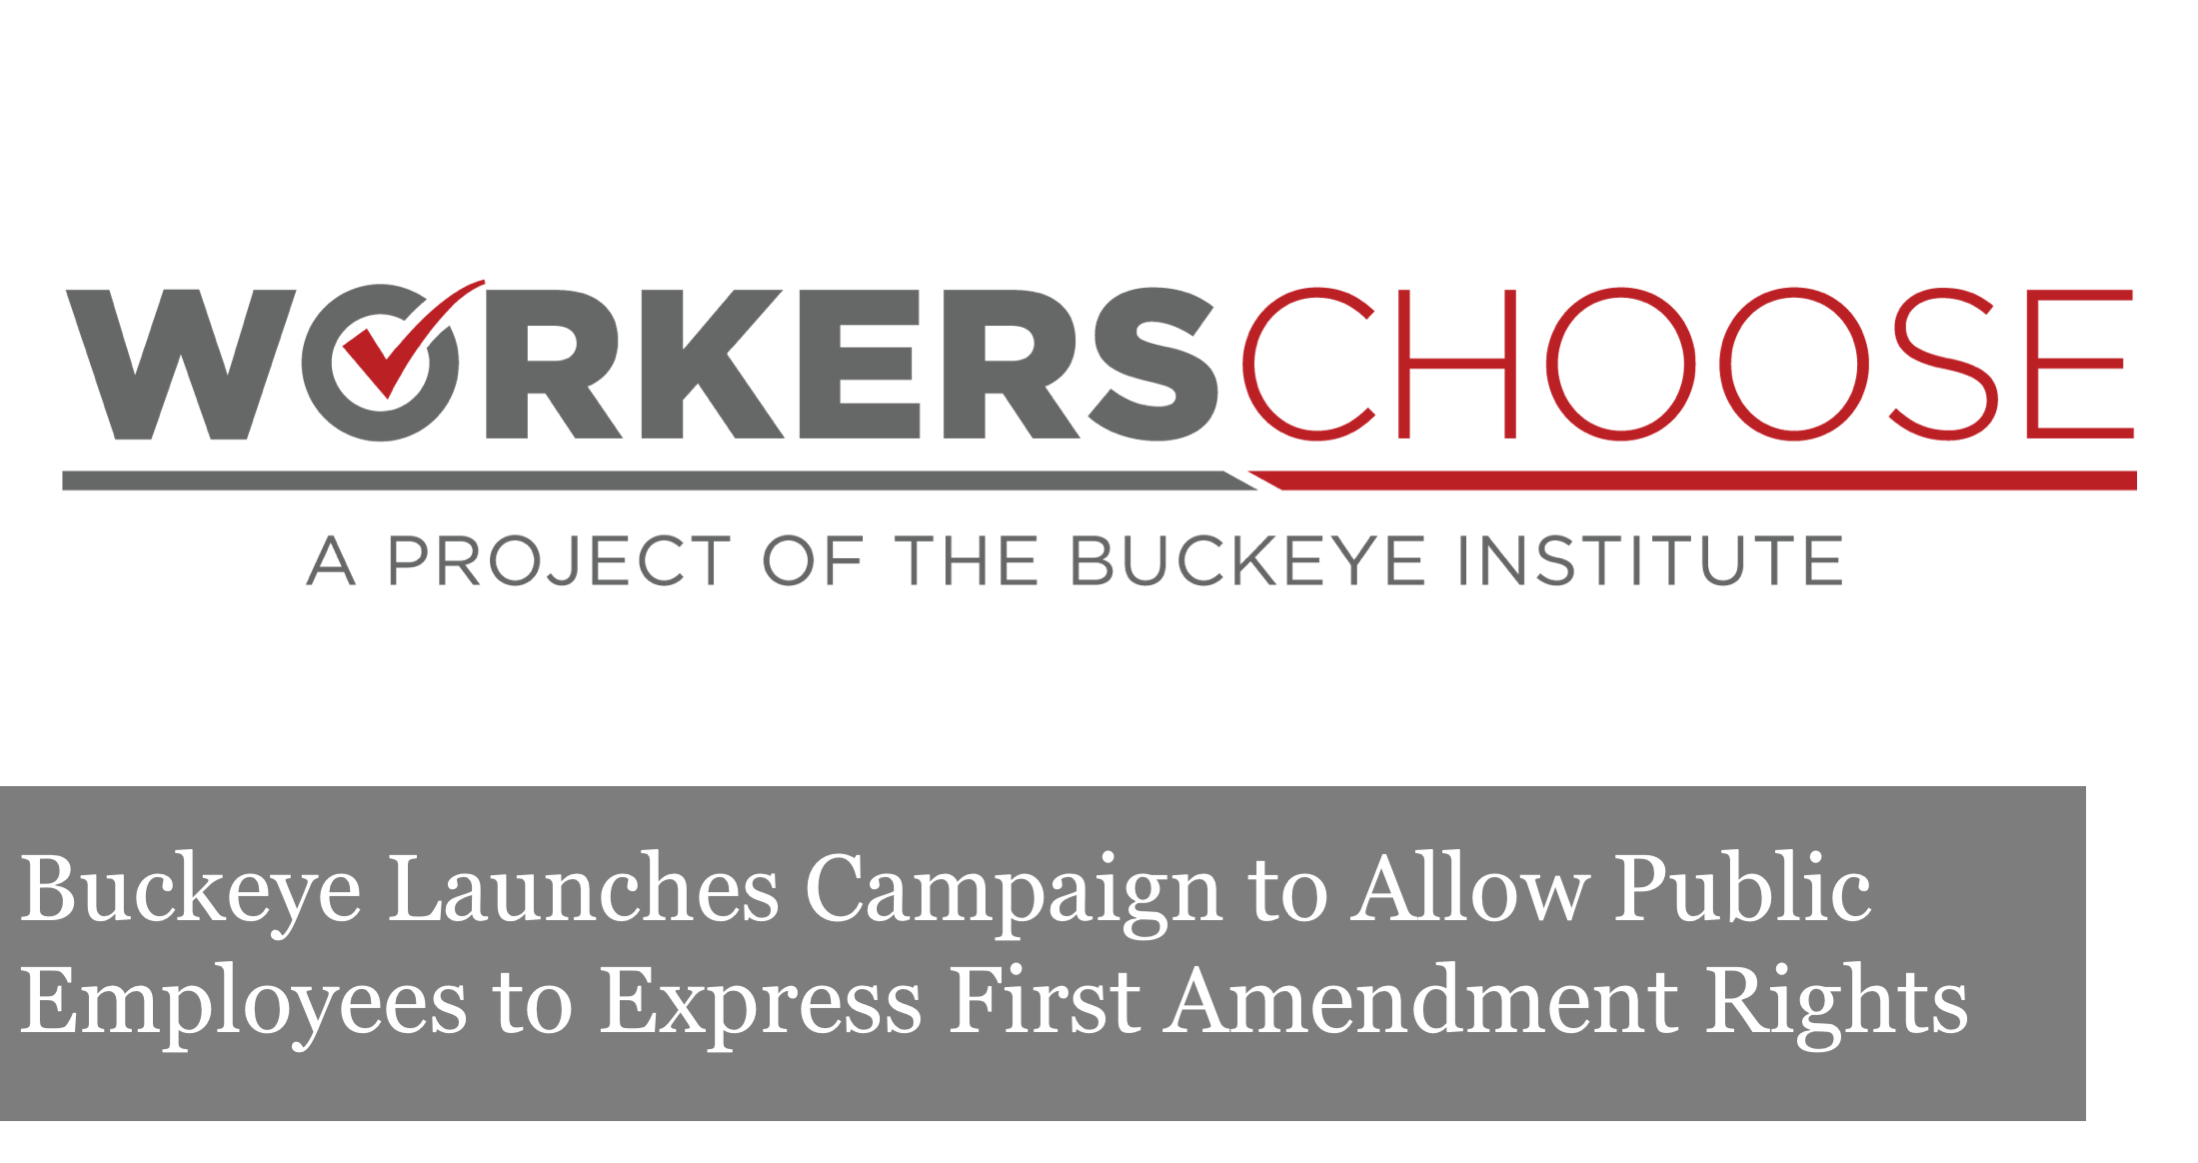 The Buckeye Institute Launches Workers Choose Campaign